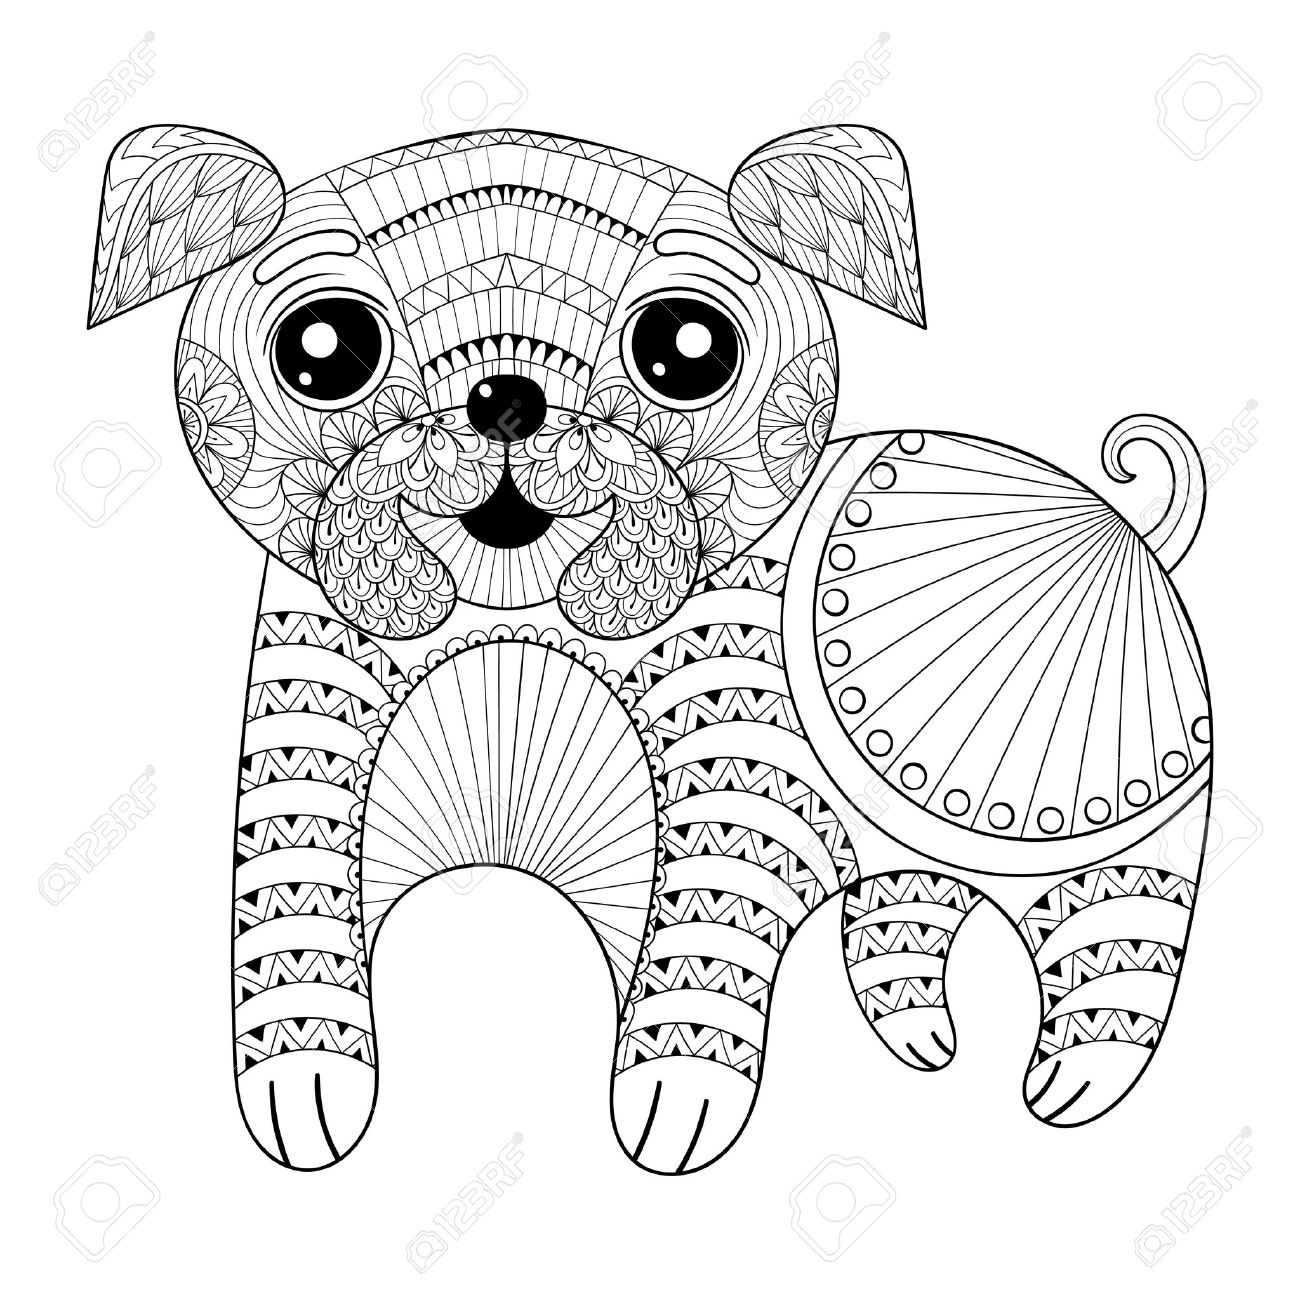 Zentangle Hand Drawing Dog For Antistress Coloring Pages, Post ...